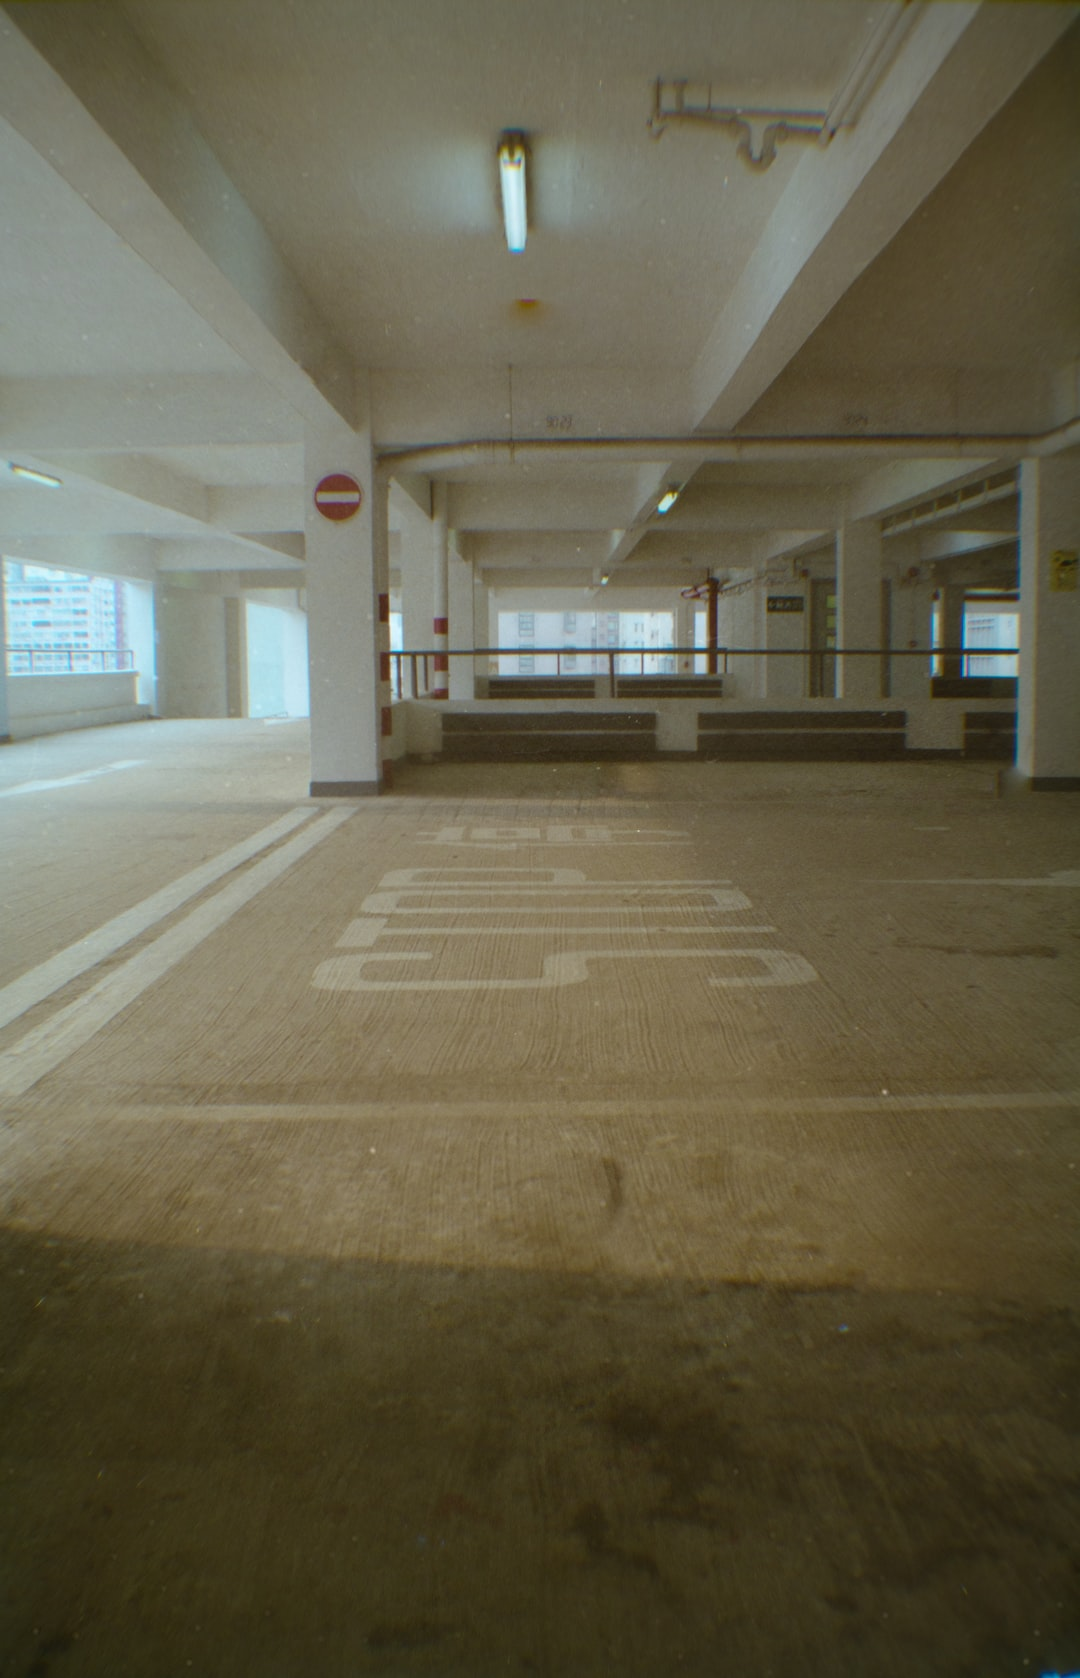 Use an Interactive Office Floor Plan to Reduce Transport Costs